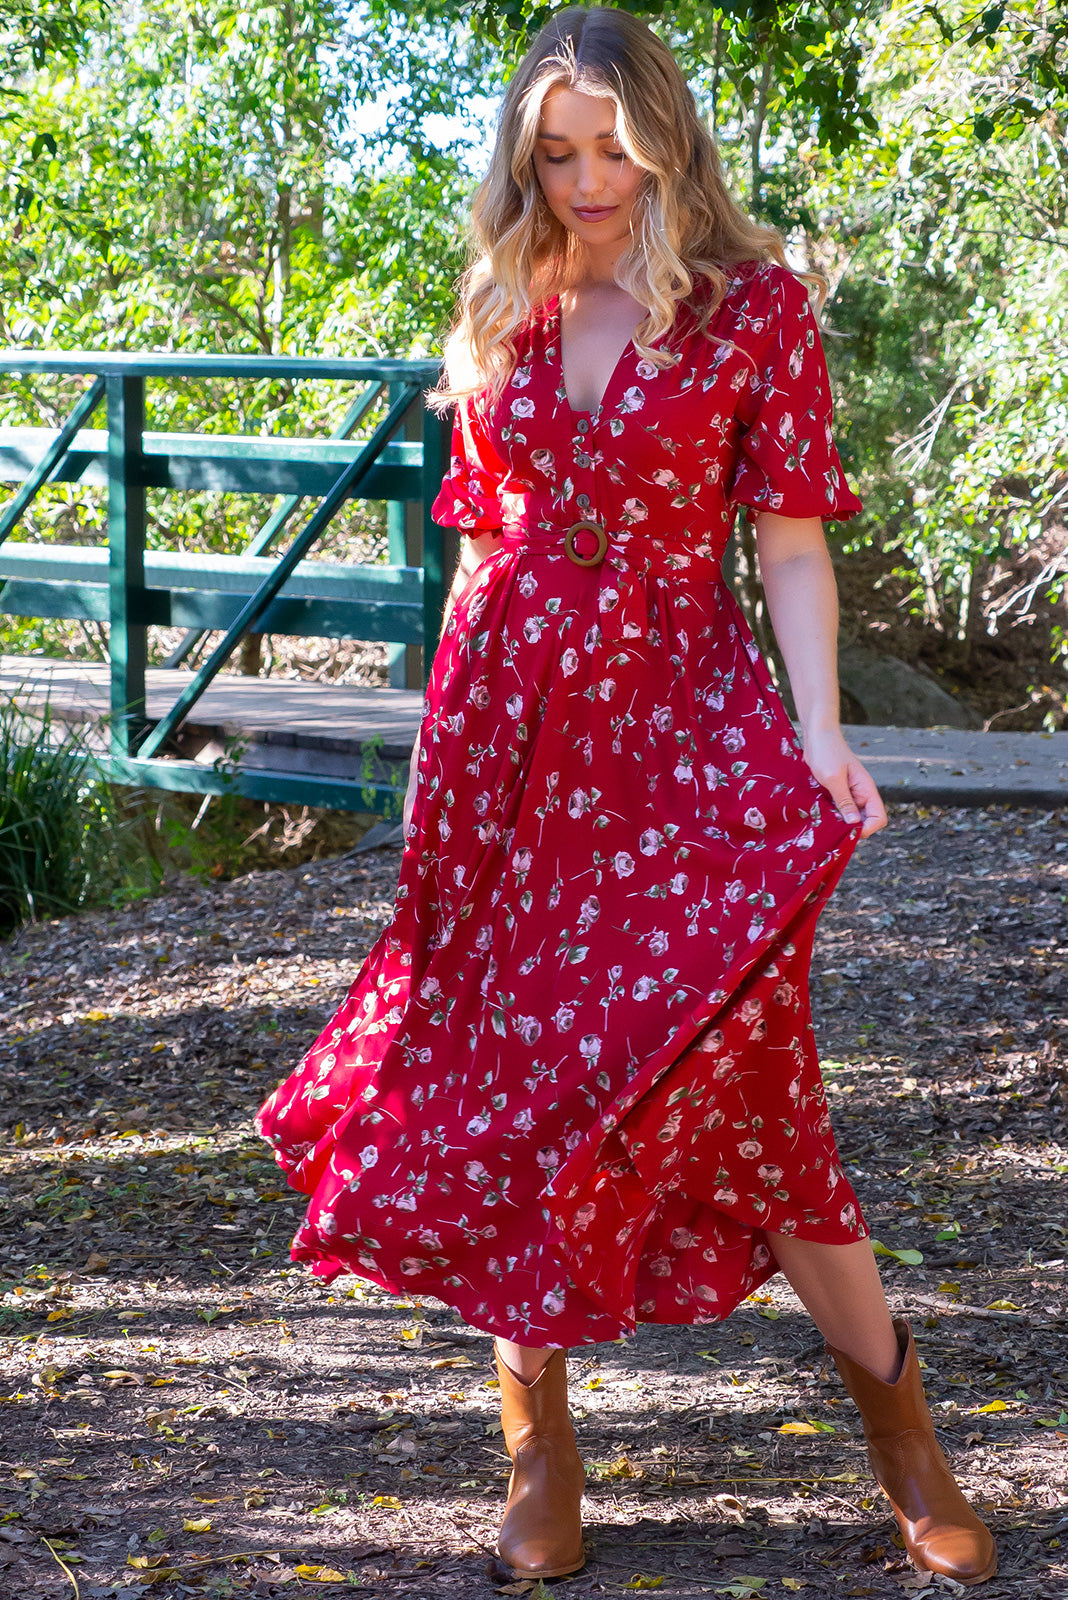 Primrose Red Rosedrop Dress is made from 100% Rayon. Functional button down front in a vintage patterned fabric. Gorgeous deep red romantic shade. Comes with deep pockets. Flattering flowy skirt, very soft and comfortable. Belt included, Retro Inspired.